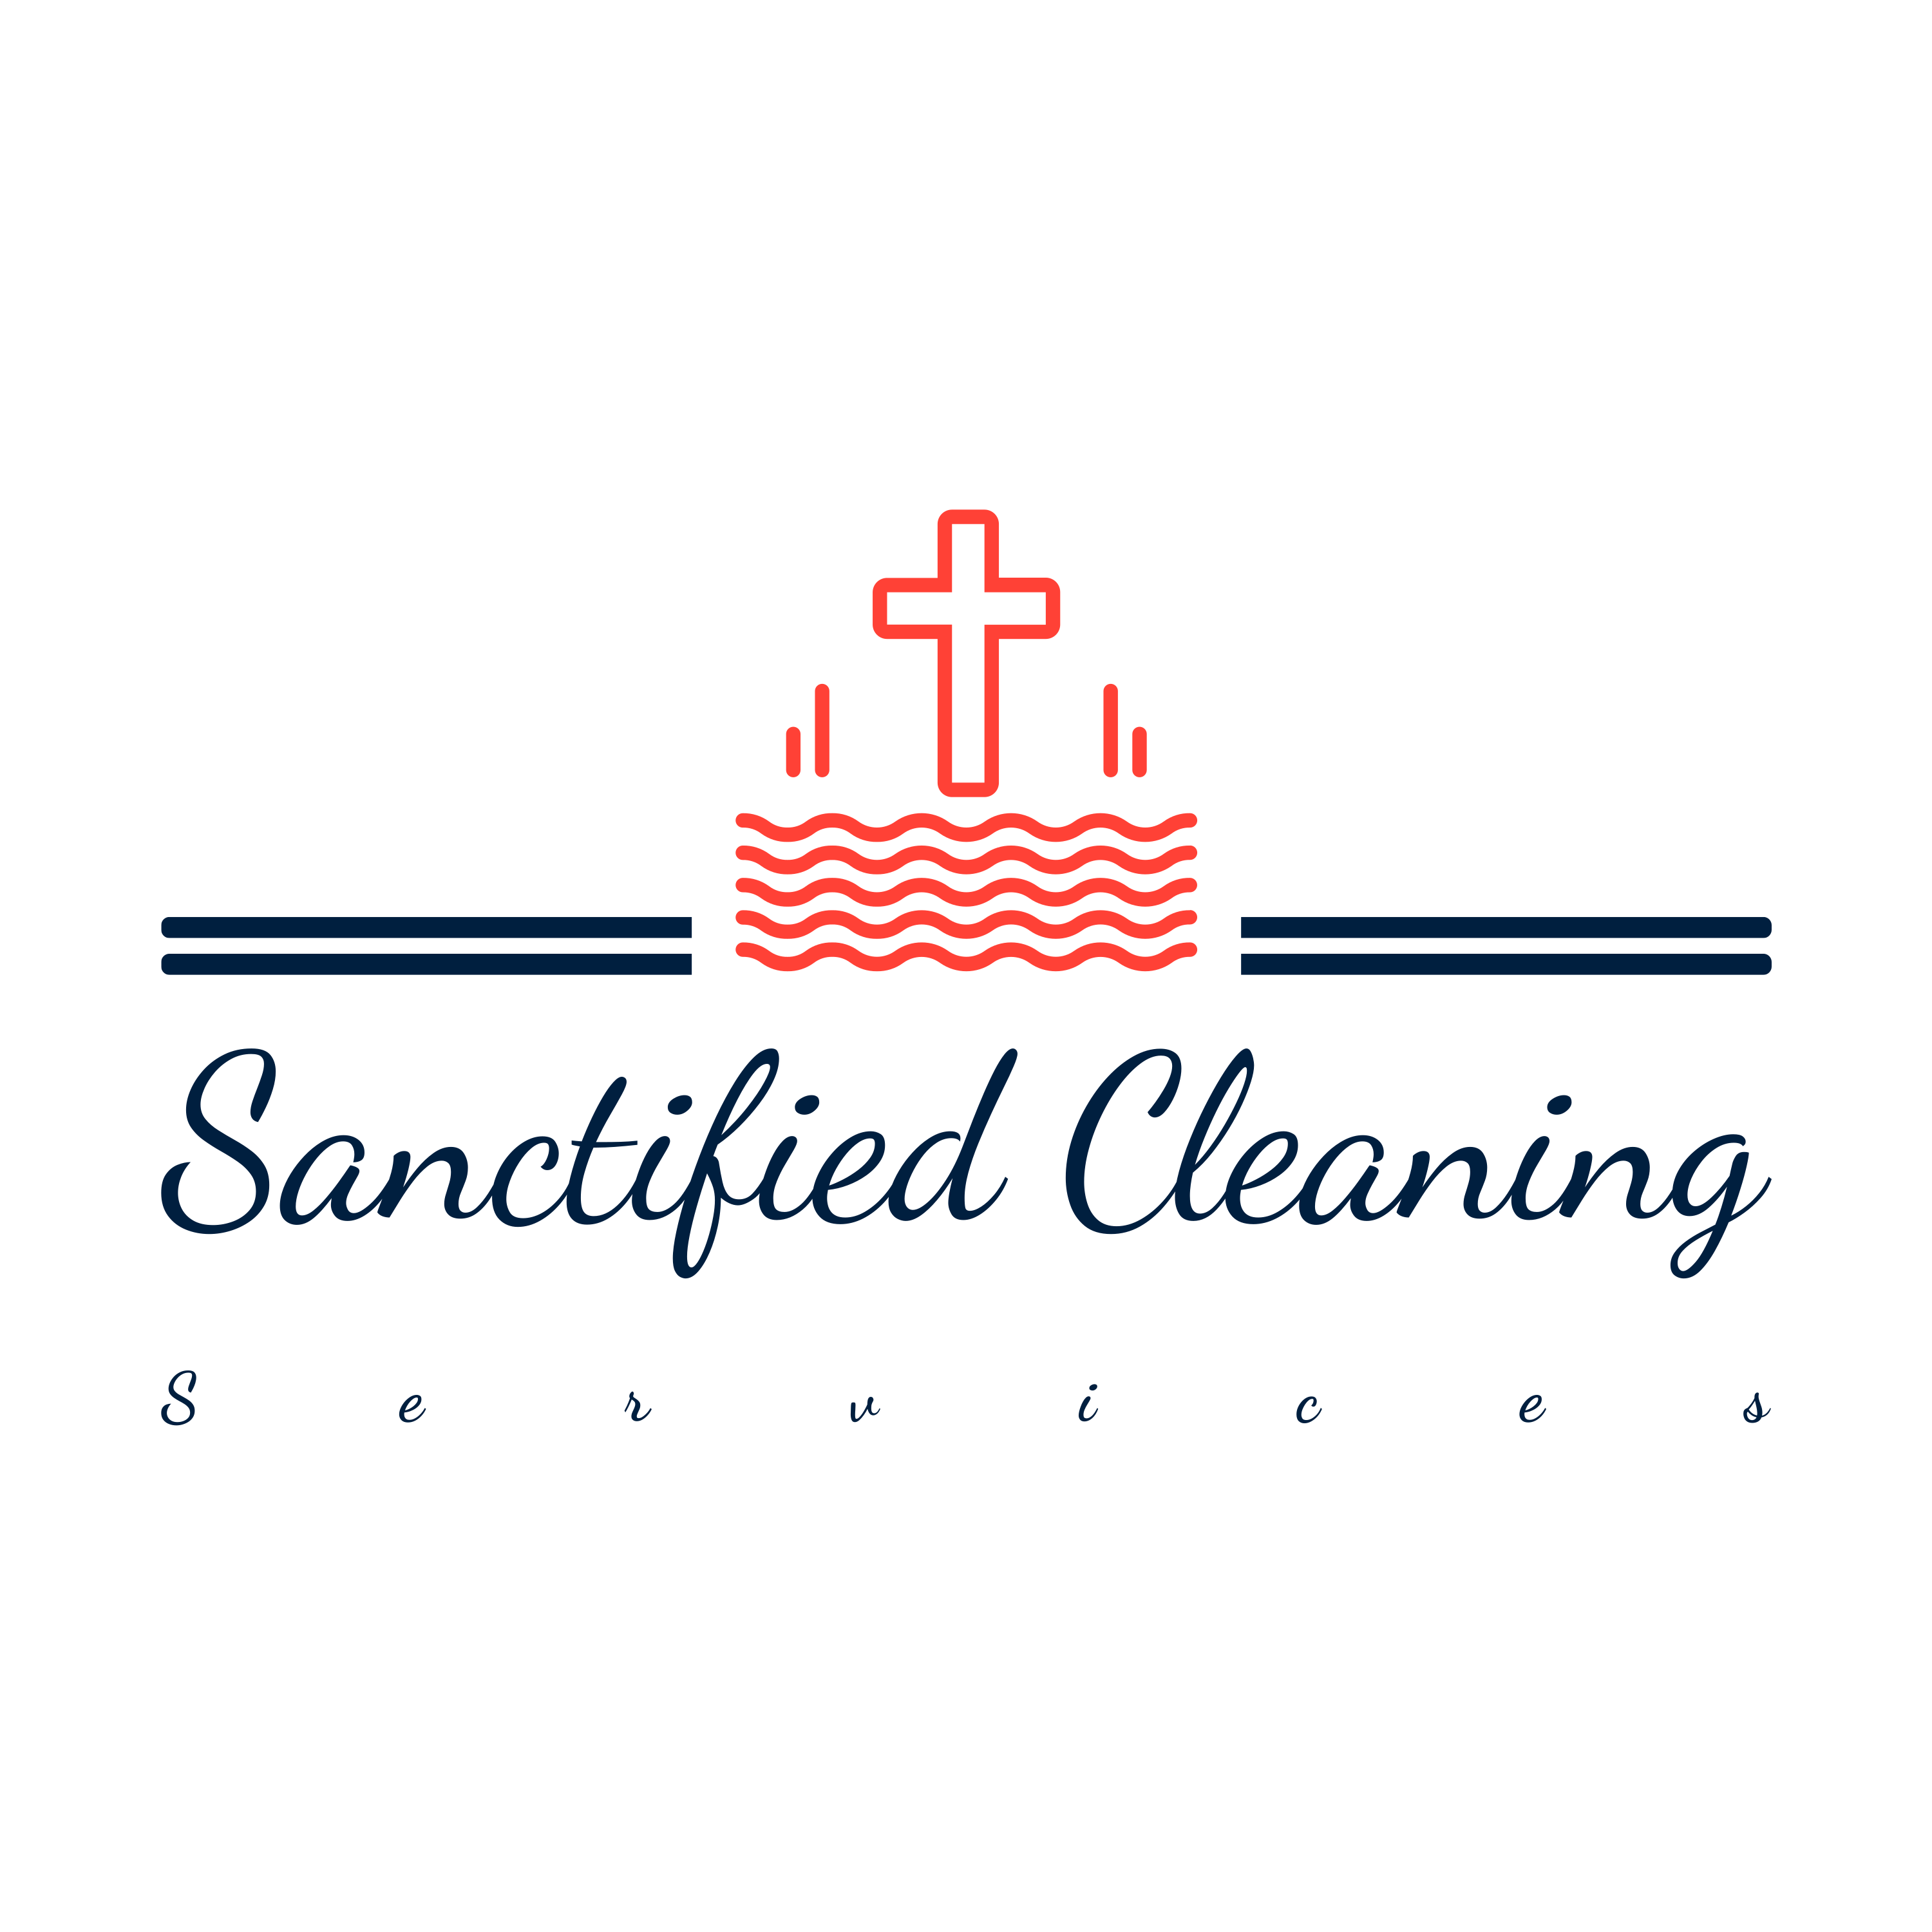 Sanctified Cleaning